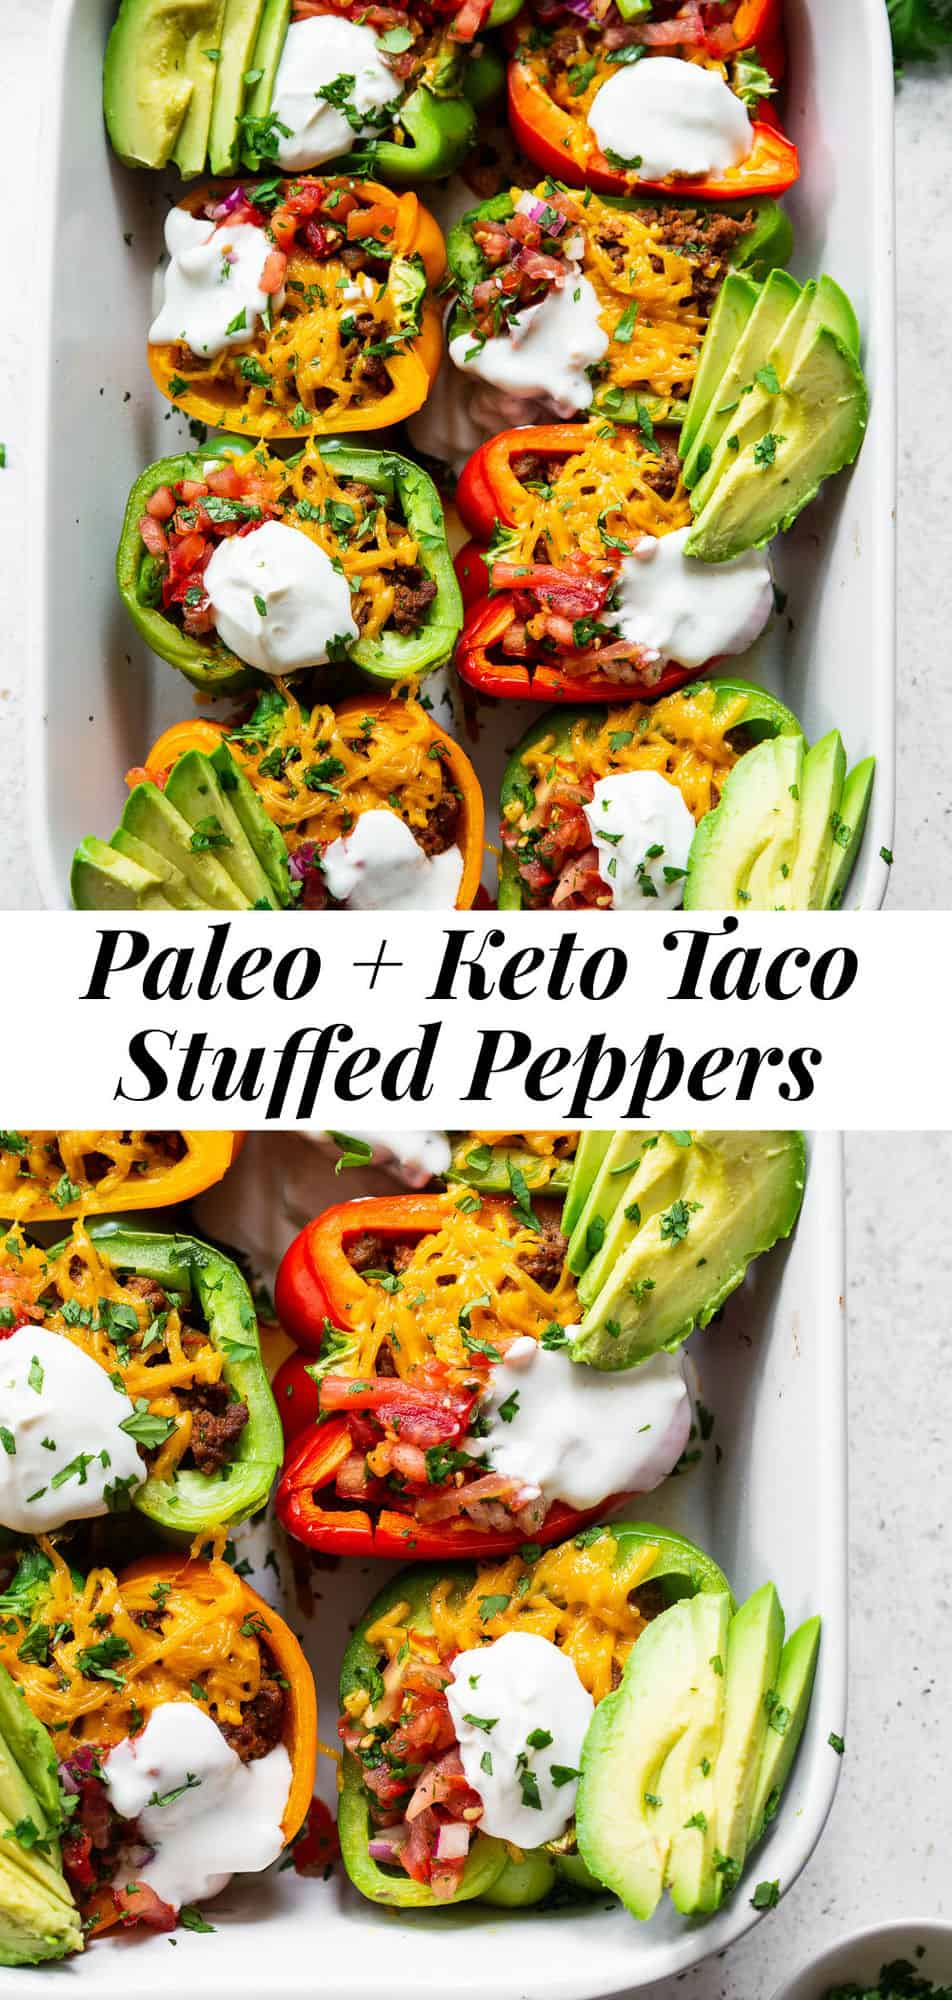 These Paleo Taco Stuffed Peppers are super easy to make and packed with goodies! Bell peppers are filled with the best taco meat and topped with vegan cheese, baked, and topped with all your favorites like fresh pico de Gallo, avocado and dairy free sour cream. Paleo, dairy free and keto friendly. #paleo #keto #cleaneating #lowcarb